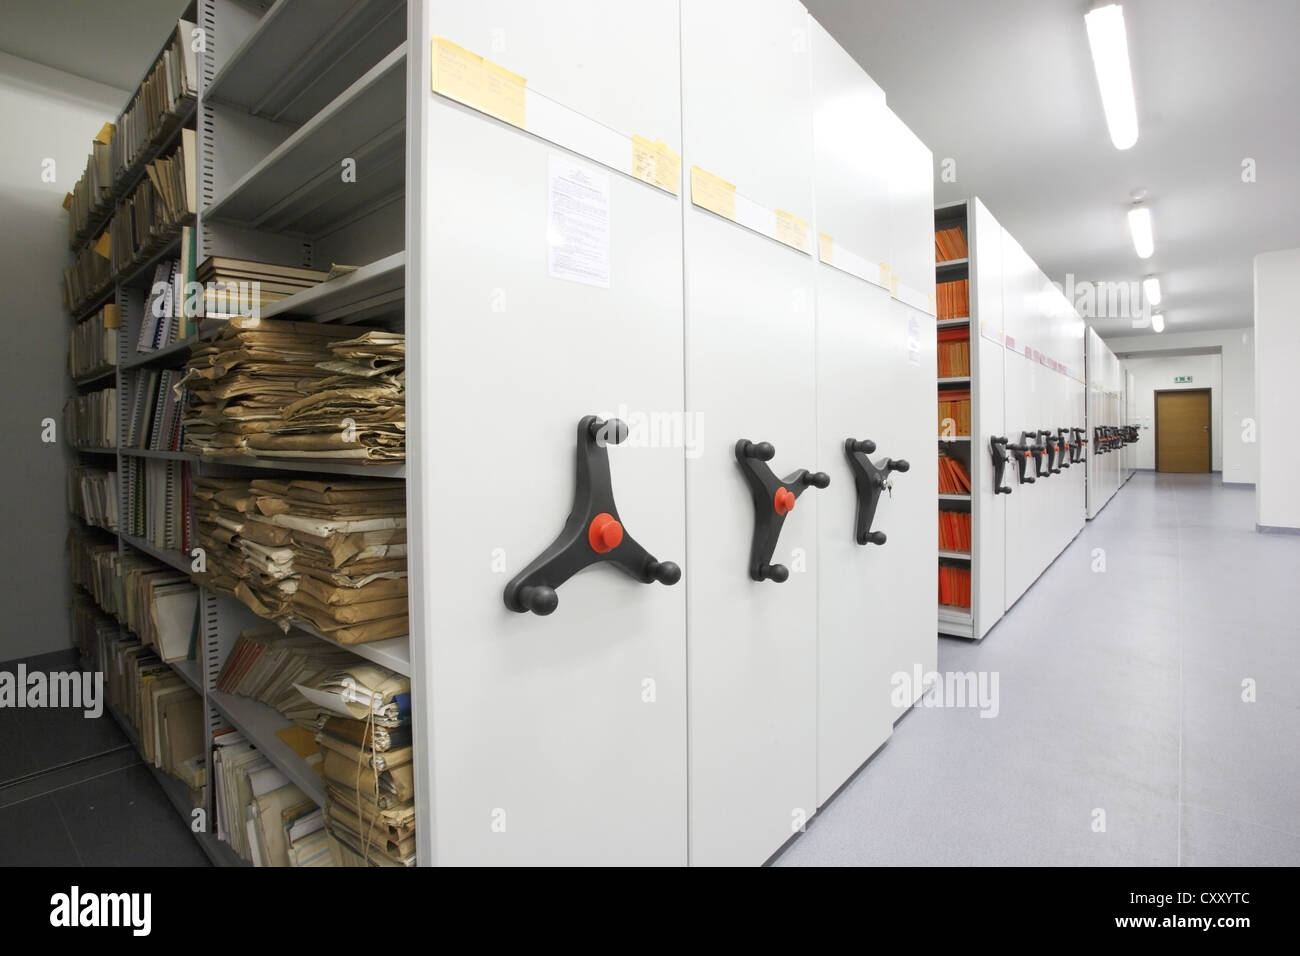 University library, university archives, file cabinets - Stock Image